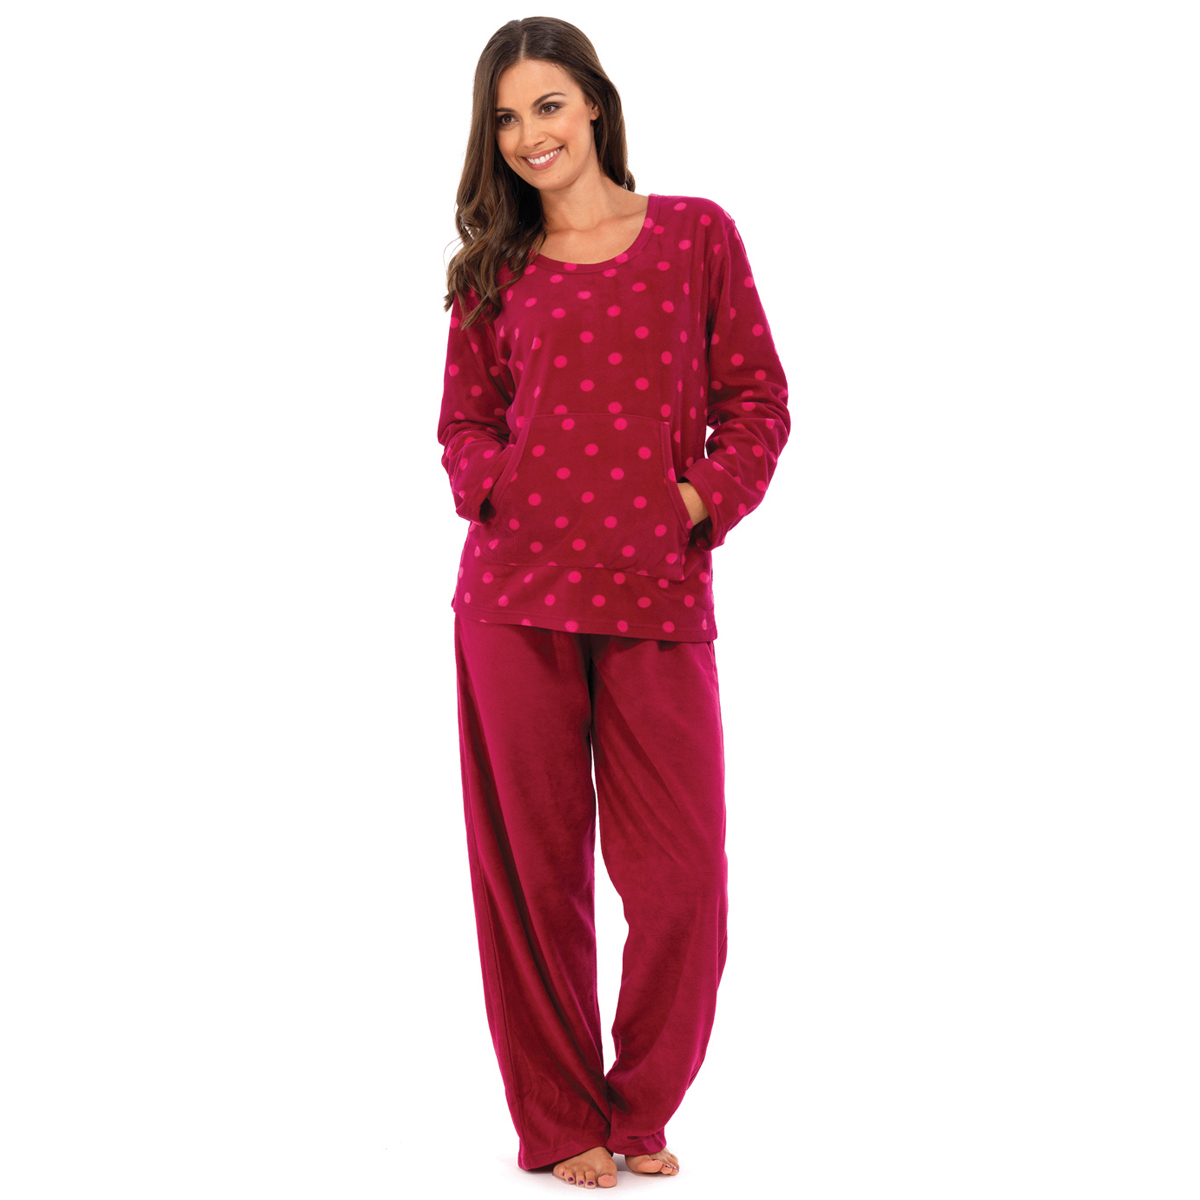 hamlergoodchain.ga: winter pajamas for women. From The Community. Amazon Try Prime All PajamaMania fleece pajamas sets will keep you warm and cozy all winter long. Pajamas for Womens Long Sleeve Sleepwear Soft PJ Set with Pants XS-XXL. by NORA TWIPS. $ - $ $ 26 $ 37 99 Prime.